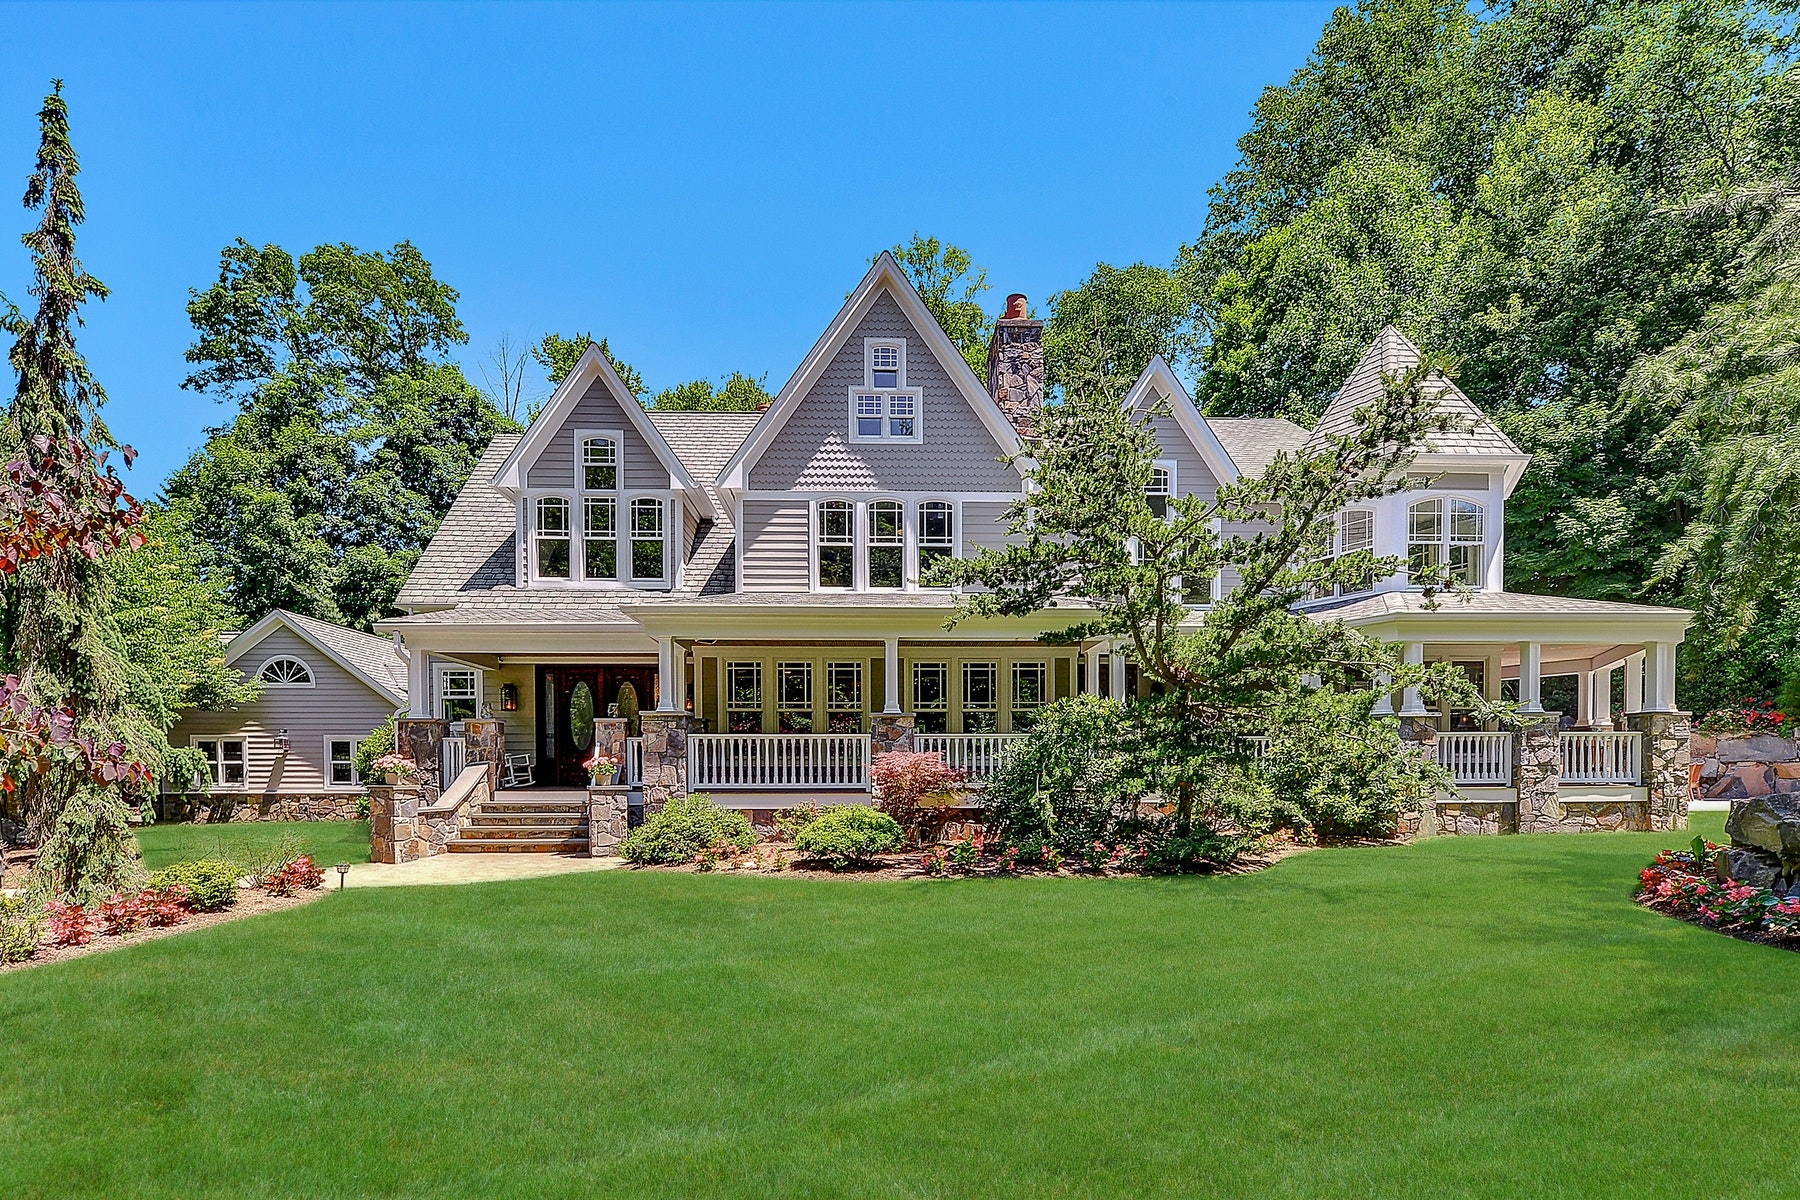 Single Family Homes voor Verkoop op STUNNING COUNTRY FARMHOUSE 284 E Saddle River Rd., Upper Saddle River, New Jersey 07458 Verenigde Staten